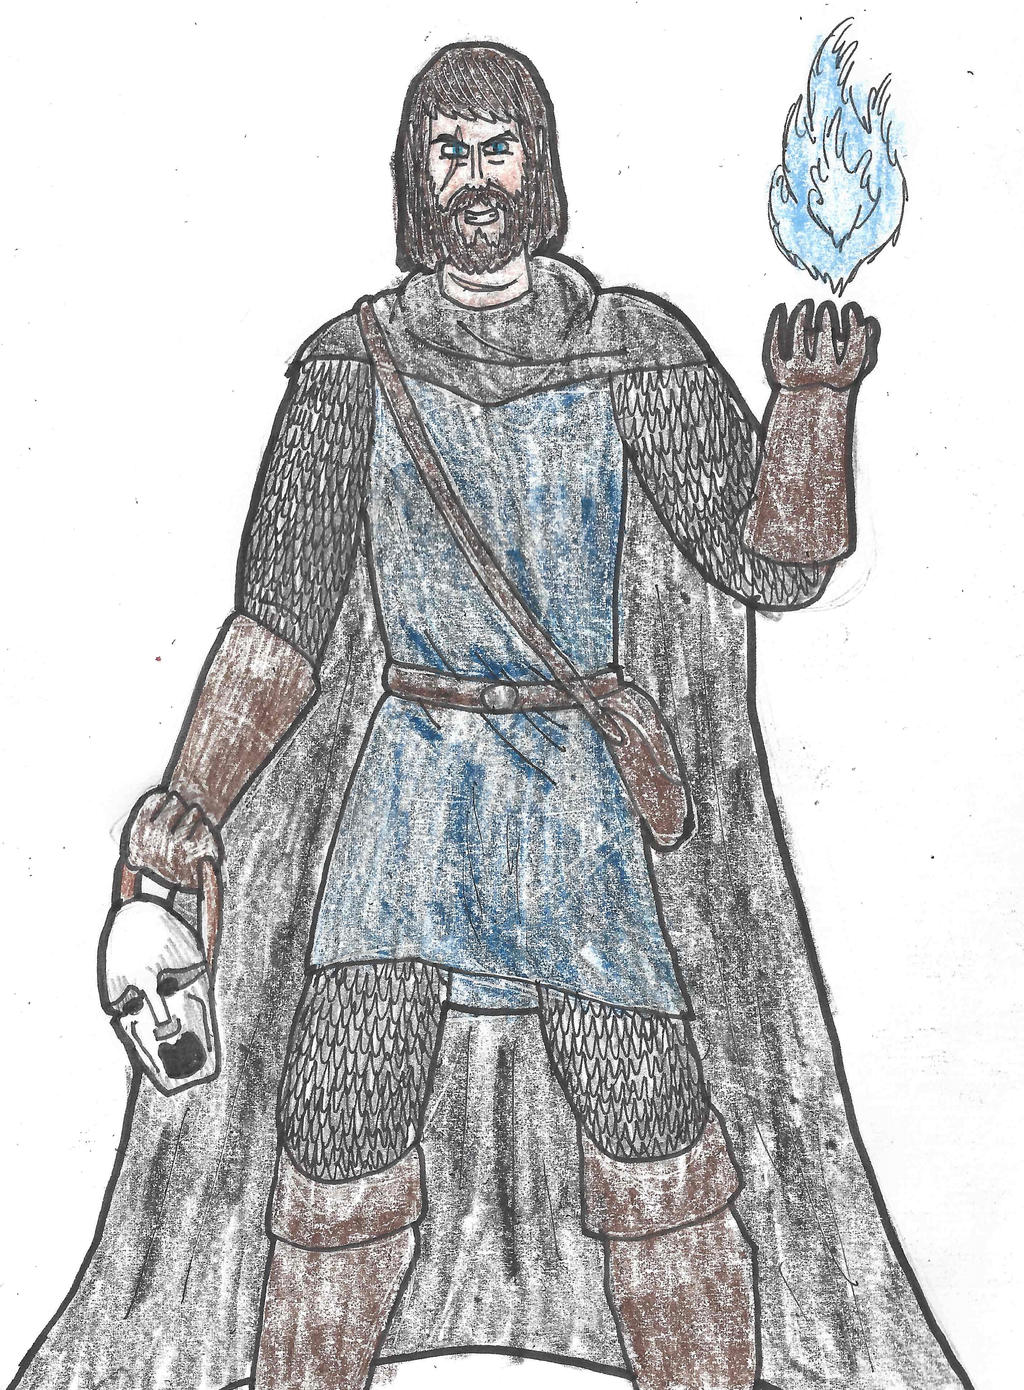 Charon Velos the Weeping Mage